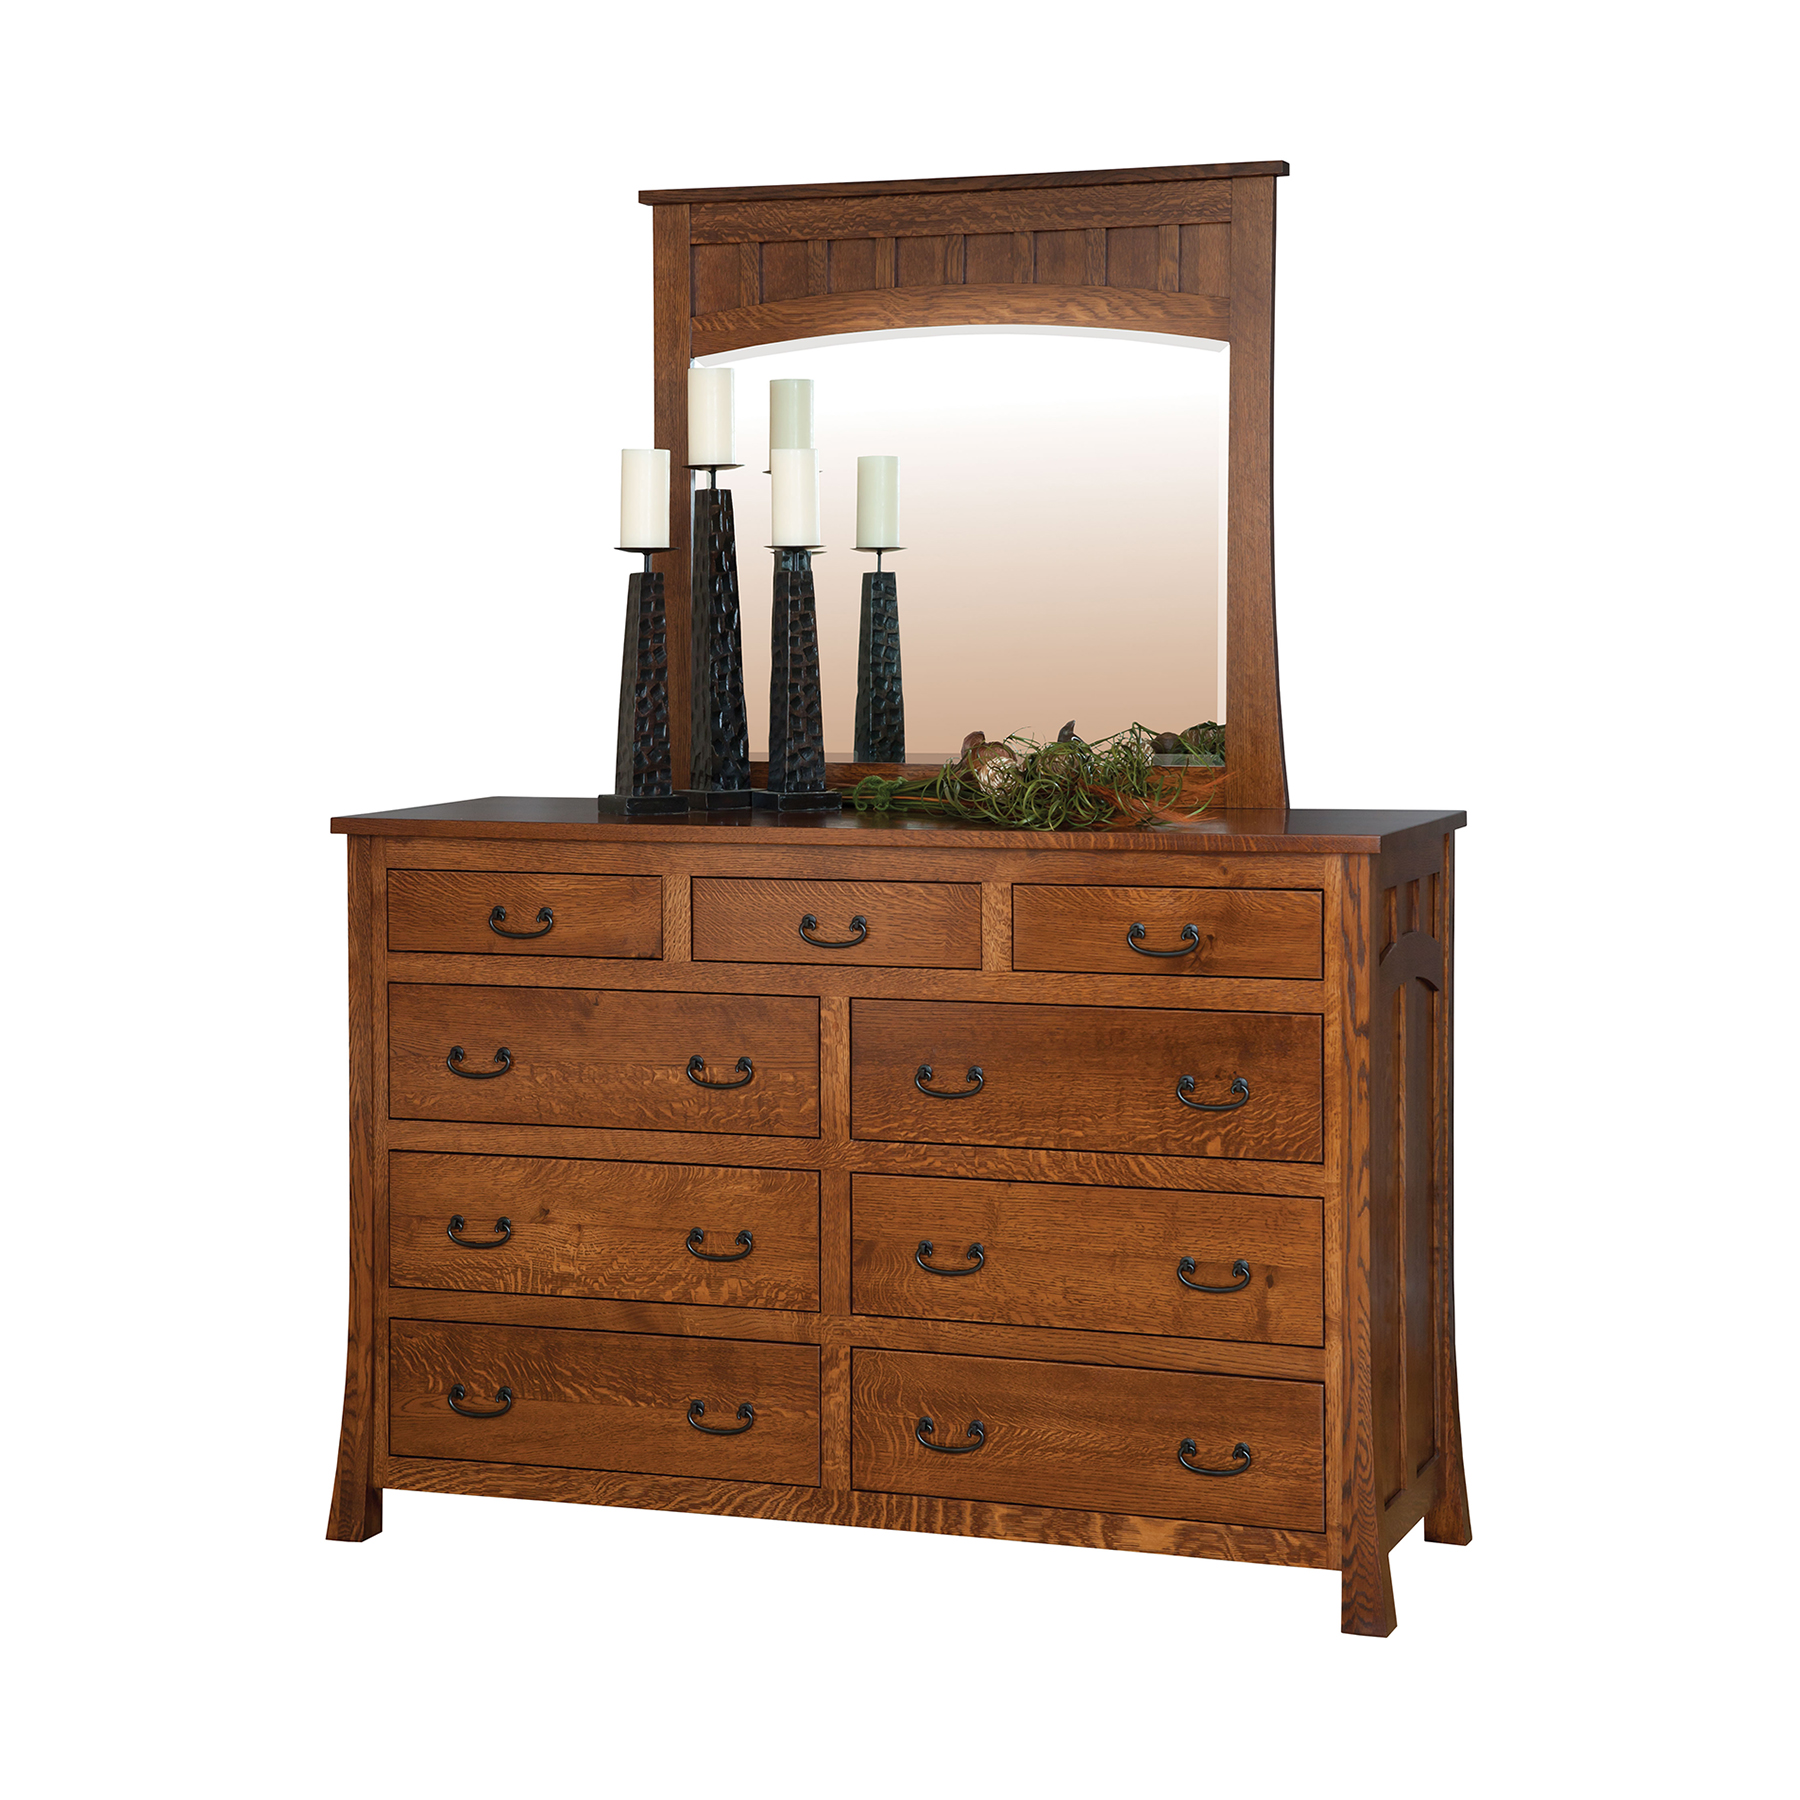 Bridgeport Mule Dresser and Mirror